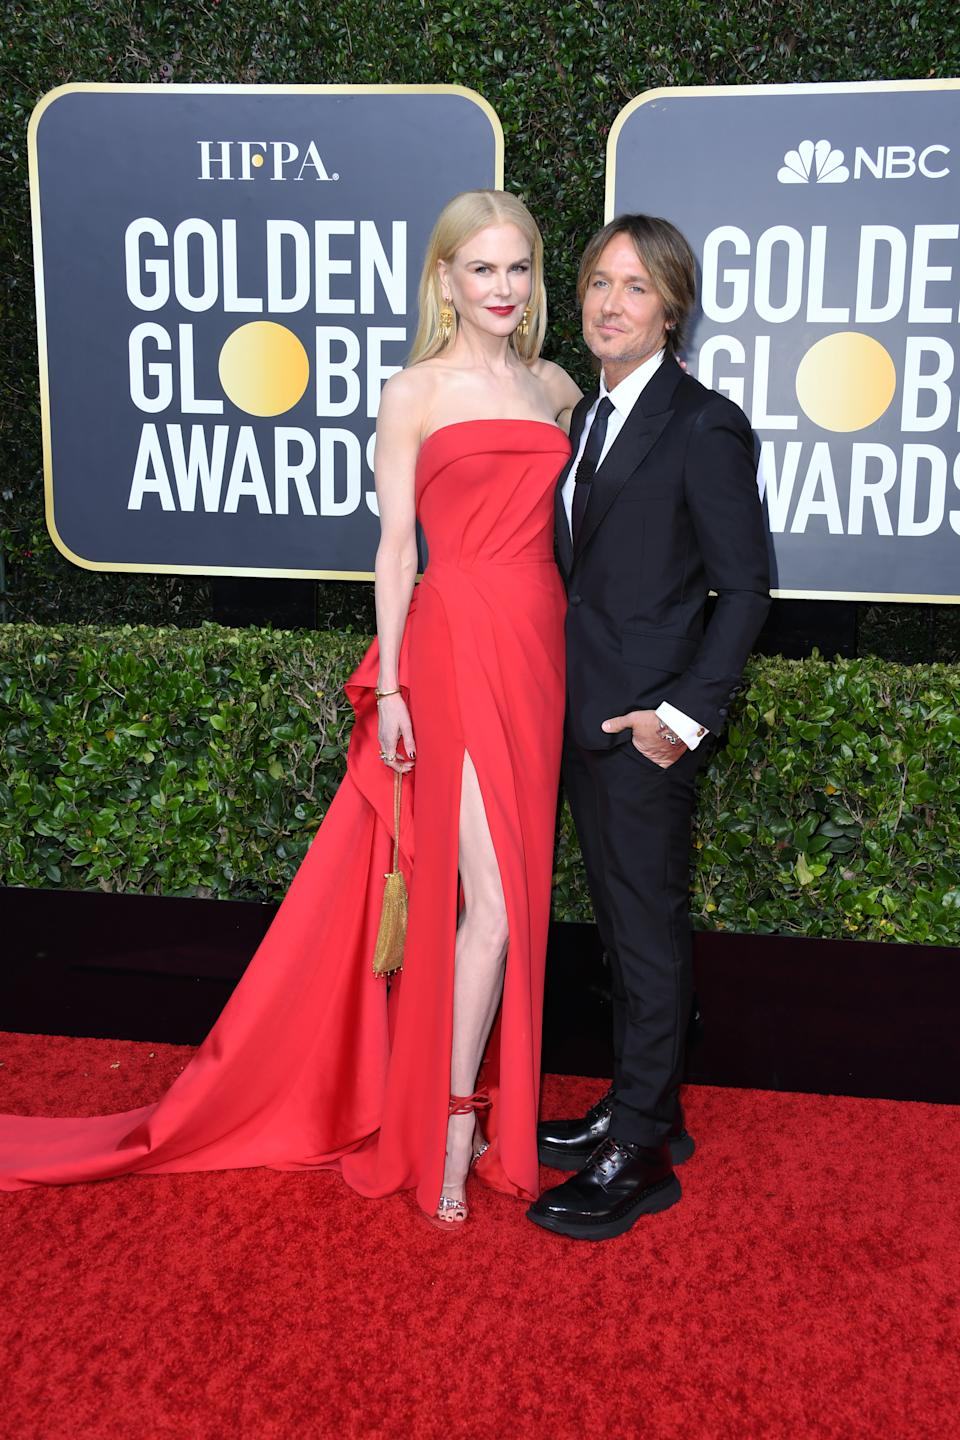 """The """"Big Little Lies"""" and """"Bombshell"""" actress looked stunning in a red gown by Atelier Versace. (Photo by Jon Kopaloff/Getty Images)"""